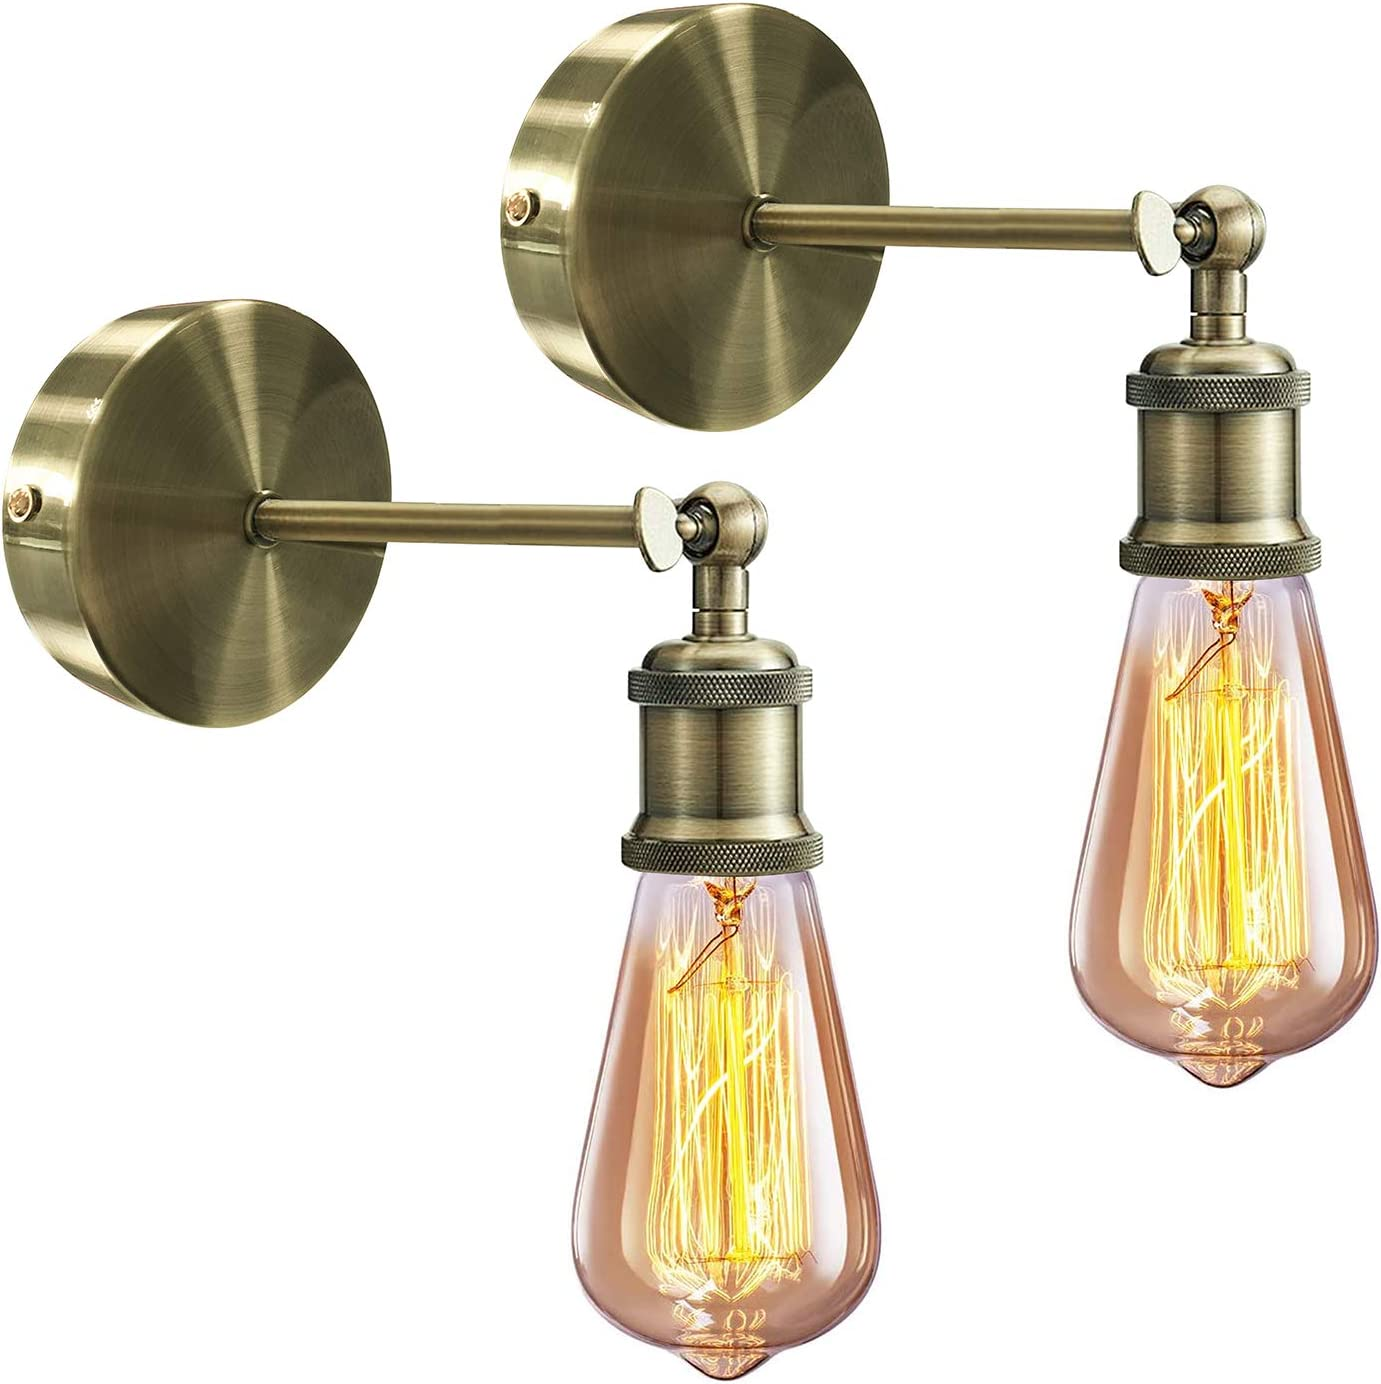 Vintage Wall Sconce 2 Pack E26 E27 Industrial Rustic Wall Sconce Light With Adjustable Angle Arm Swing Wall Lamp Wall Lighting Fixture For Bedroom Kitchen Hotel Cafe Bulb Not Included Brass